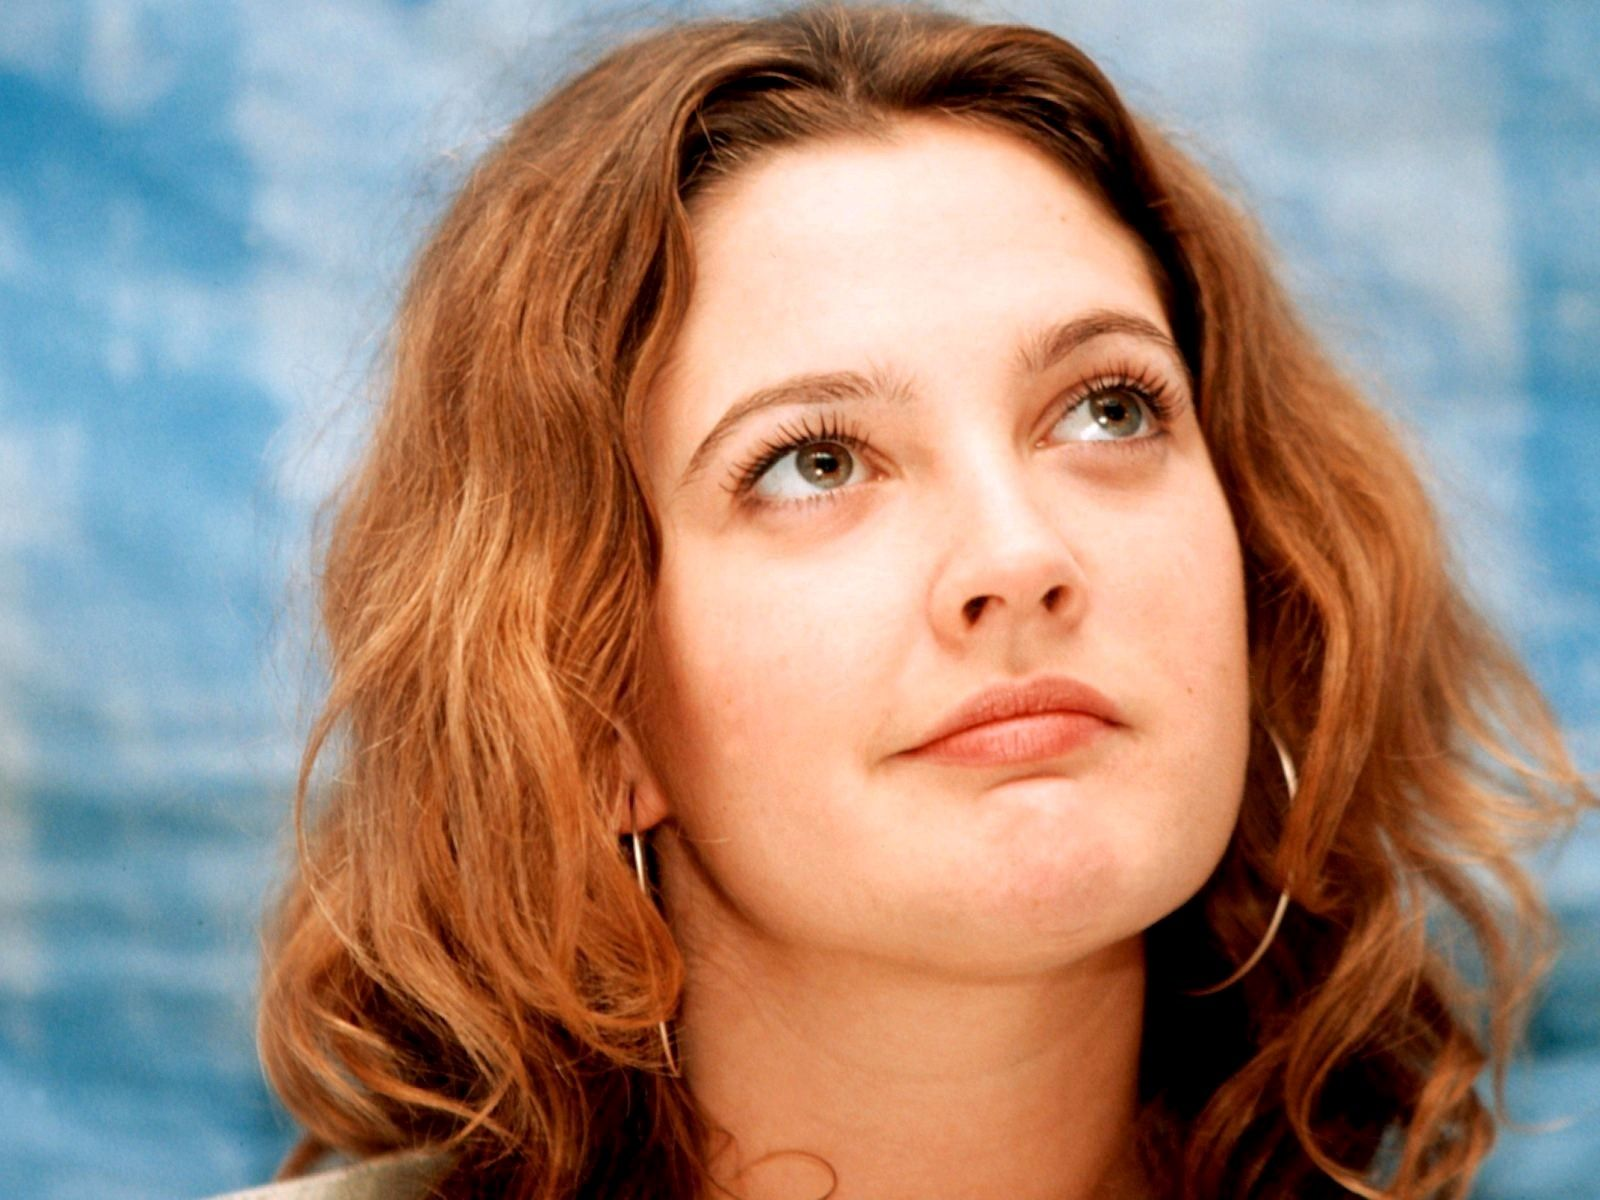 Drew Barrymore 1000x1000px #930761 | 001 Stars Today | Pinterest ...